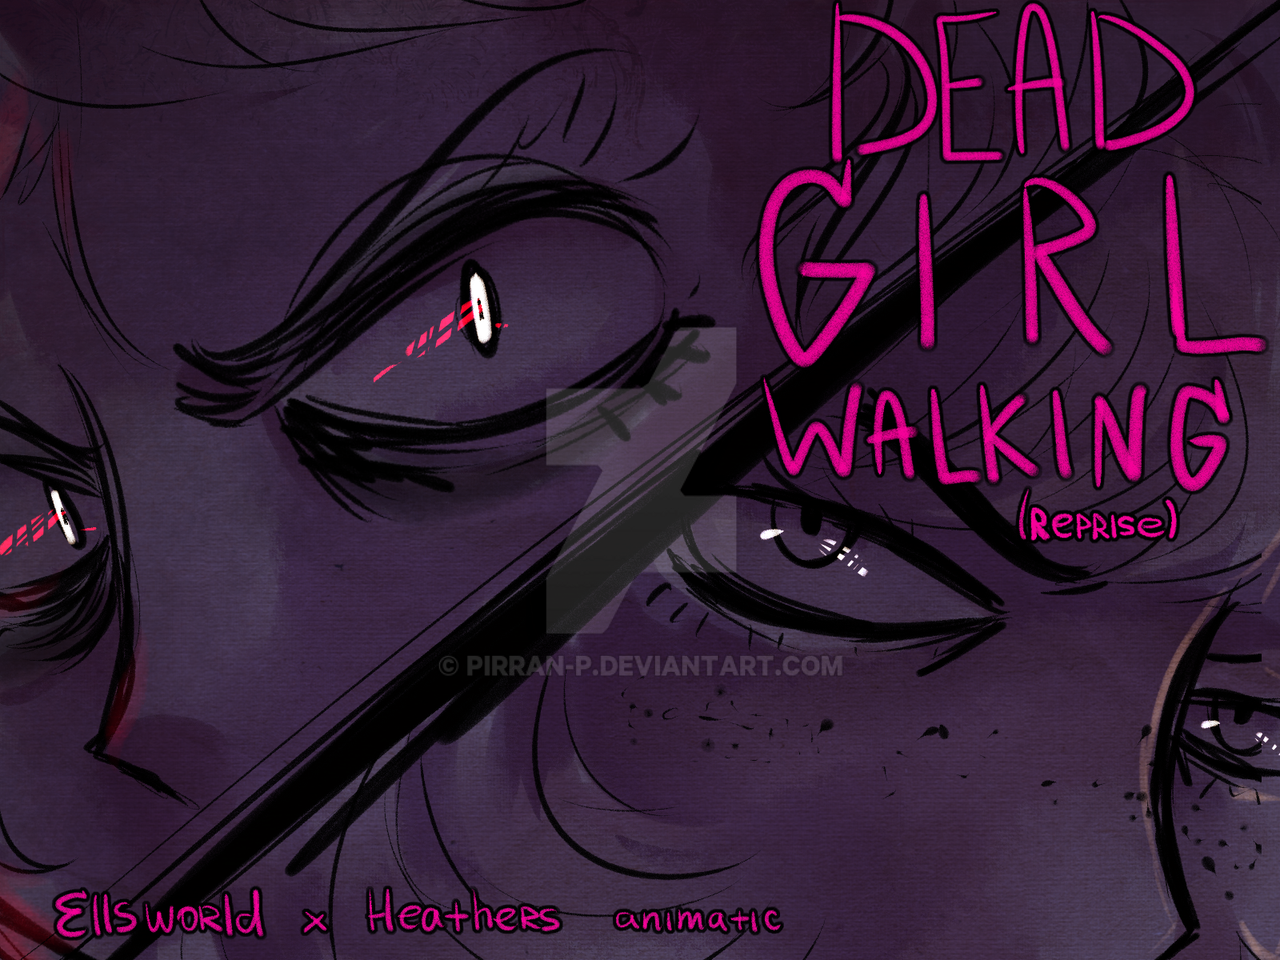 Dead Girl Walking (reprise) [ANIMATIC] by pirran-p on DeviantArt